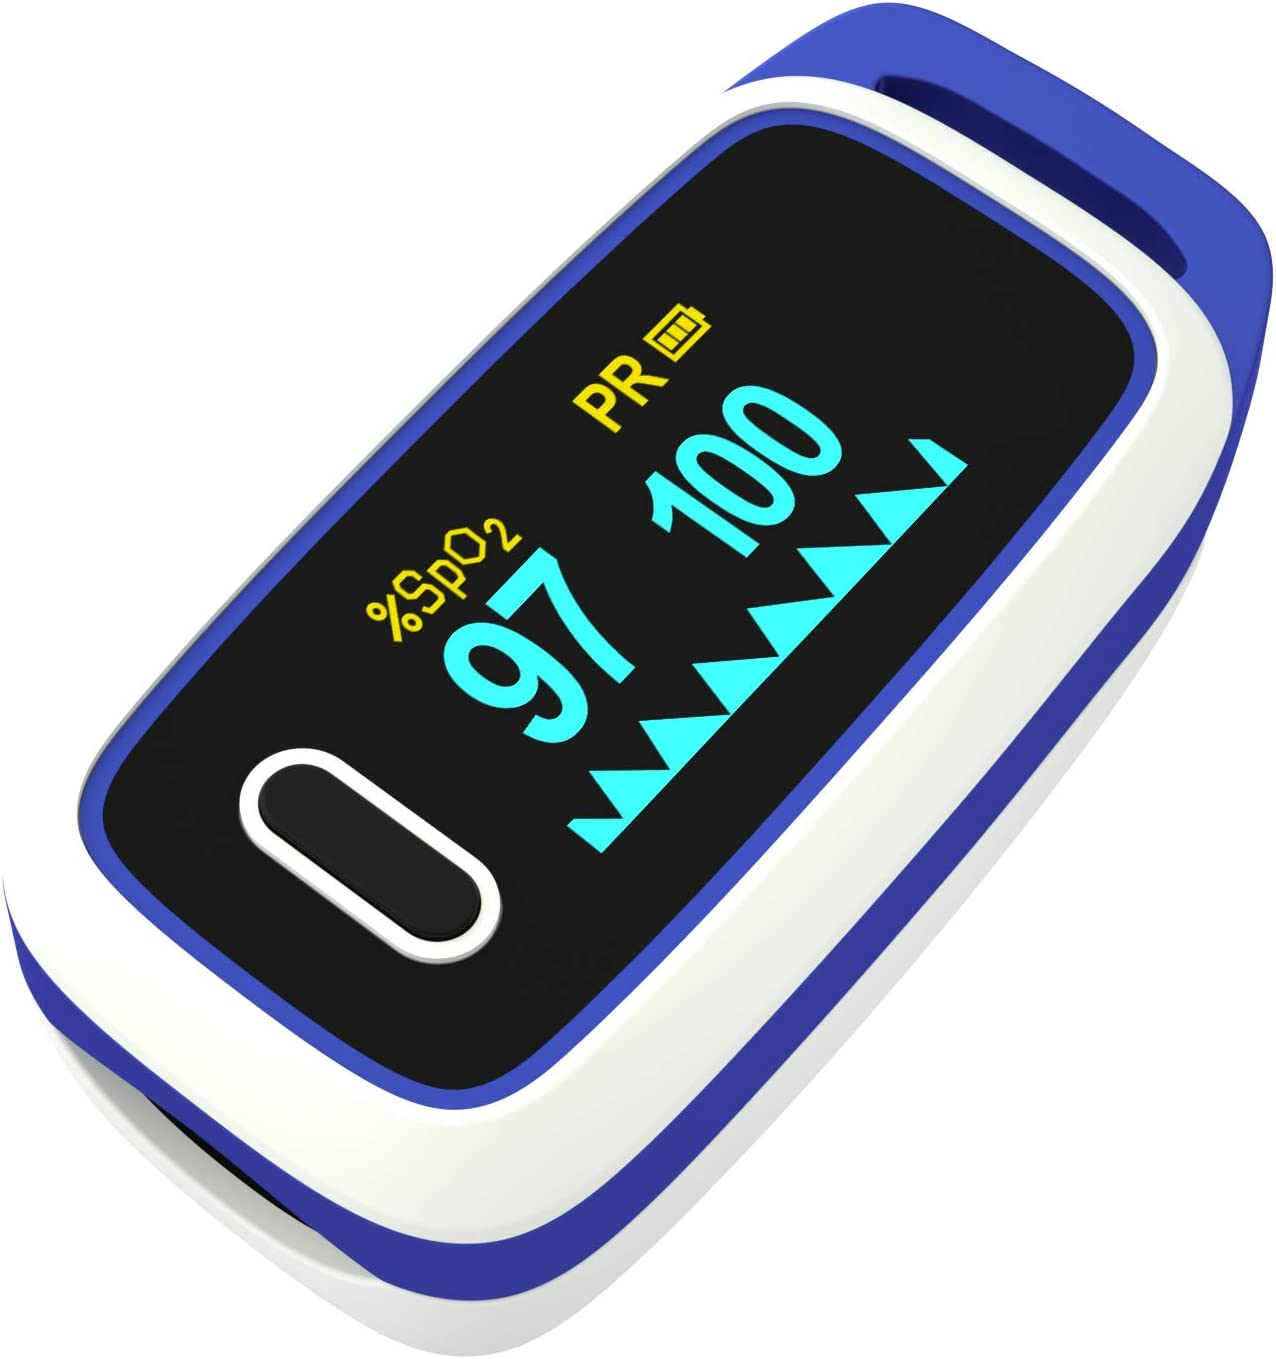 Fingertip Pulse Oximeter - Blood Oxygen Saturation Monitor for Sports or Aviation Use, LED Display Oximeter with SpO2 Levels and Pulse Rate : Health & Household